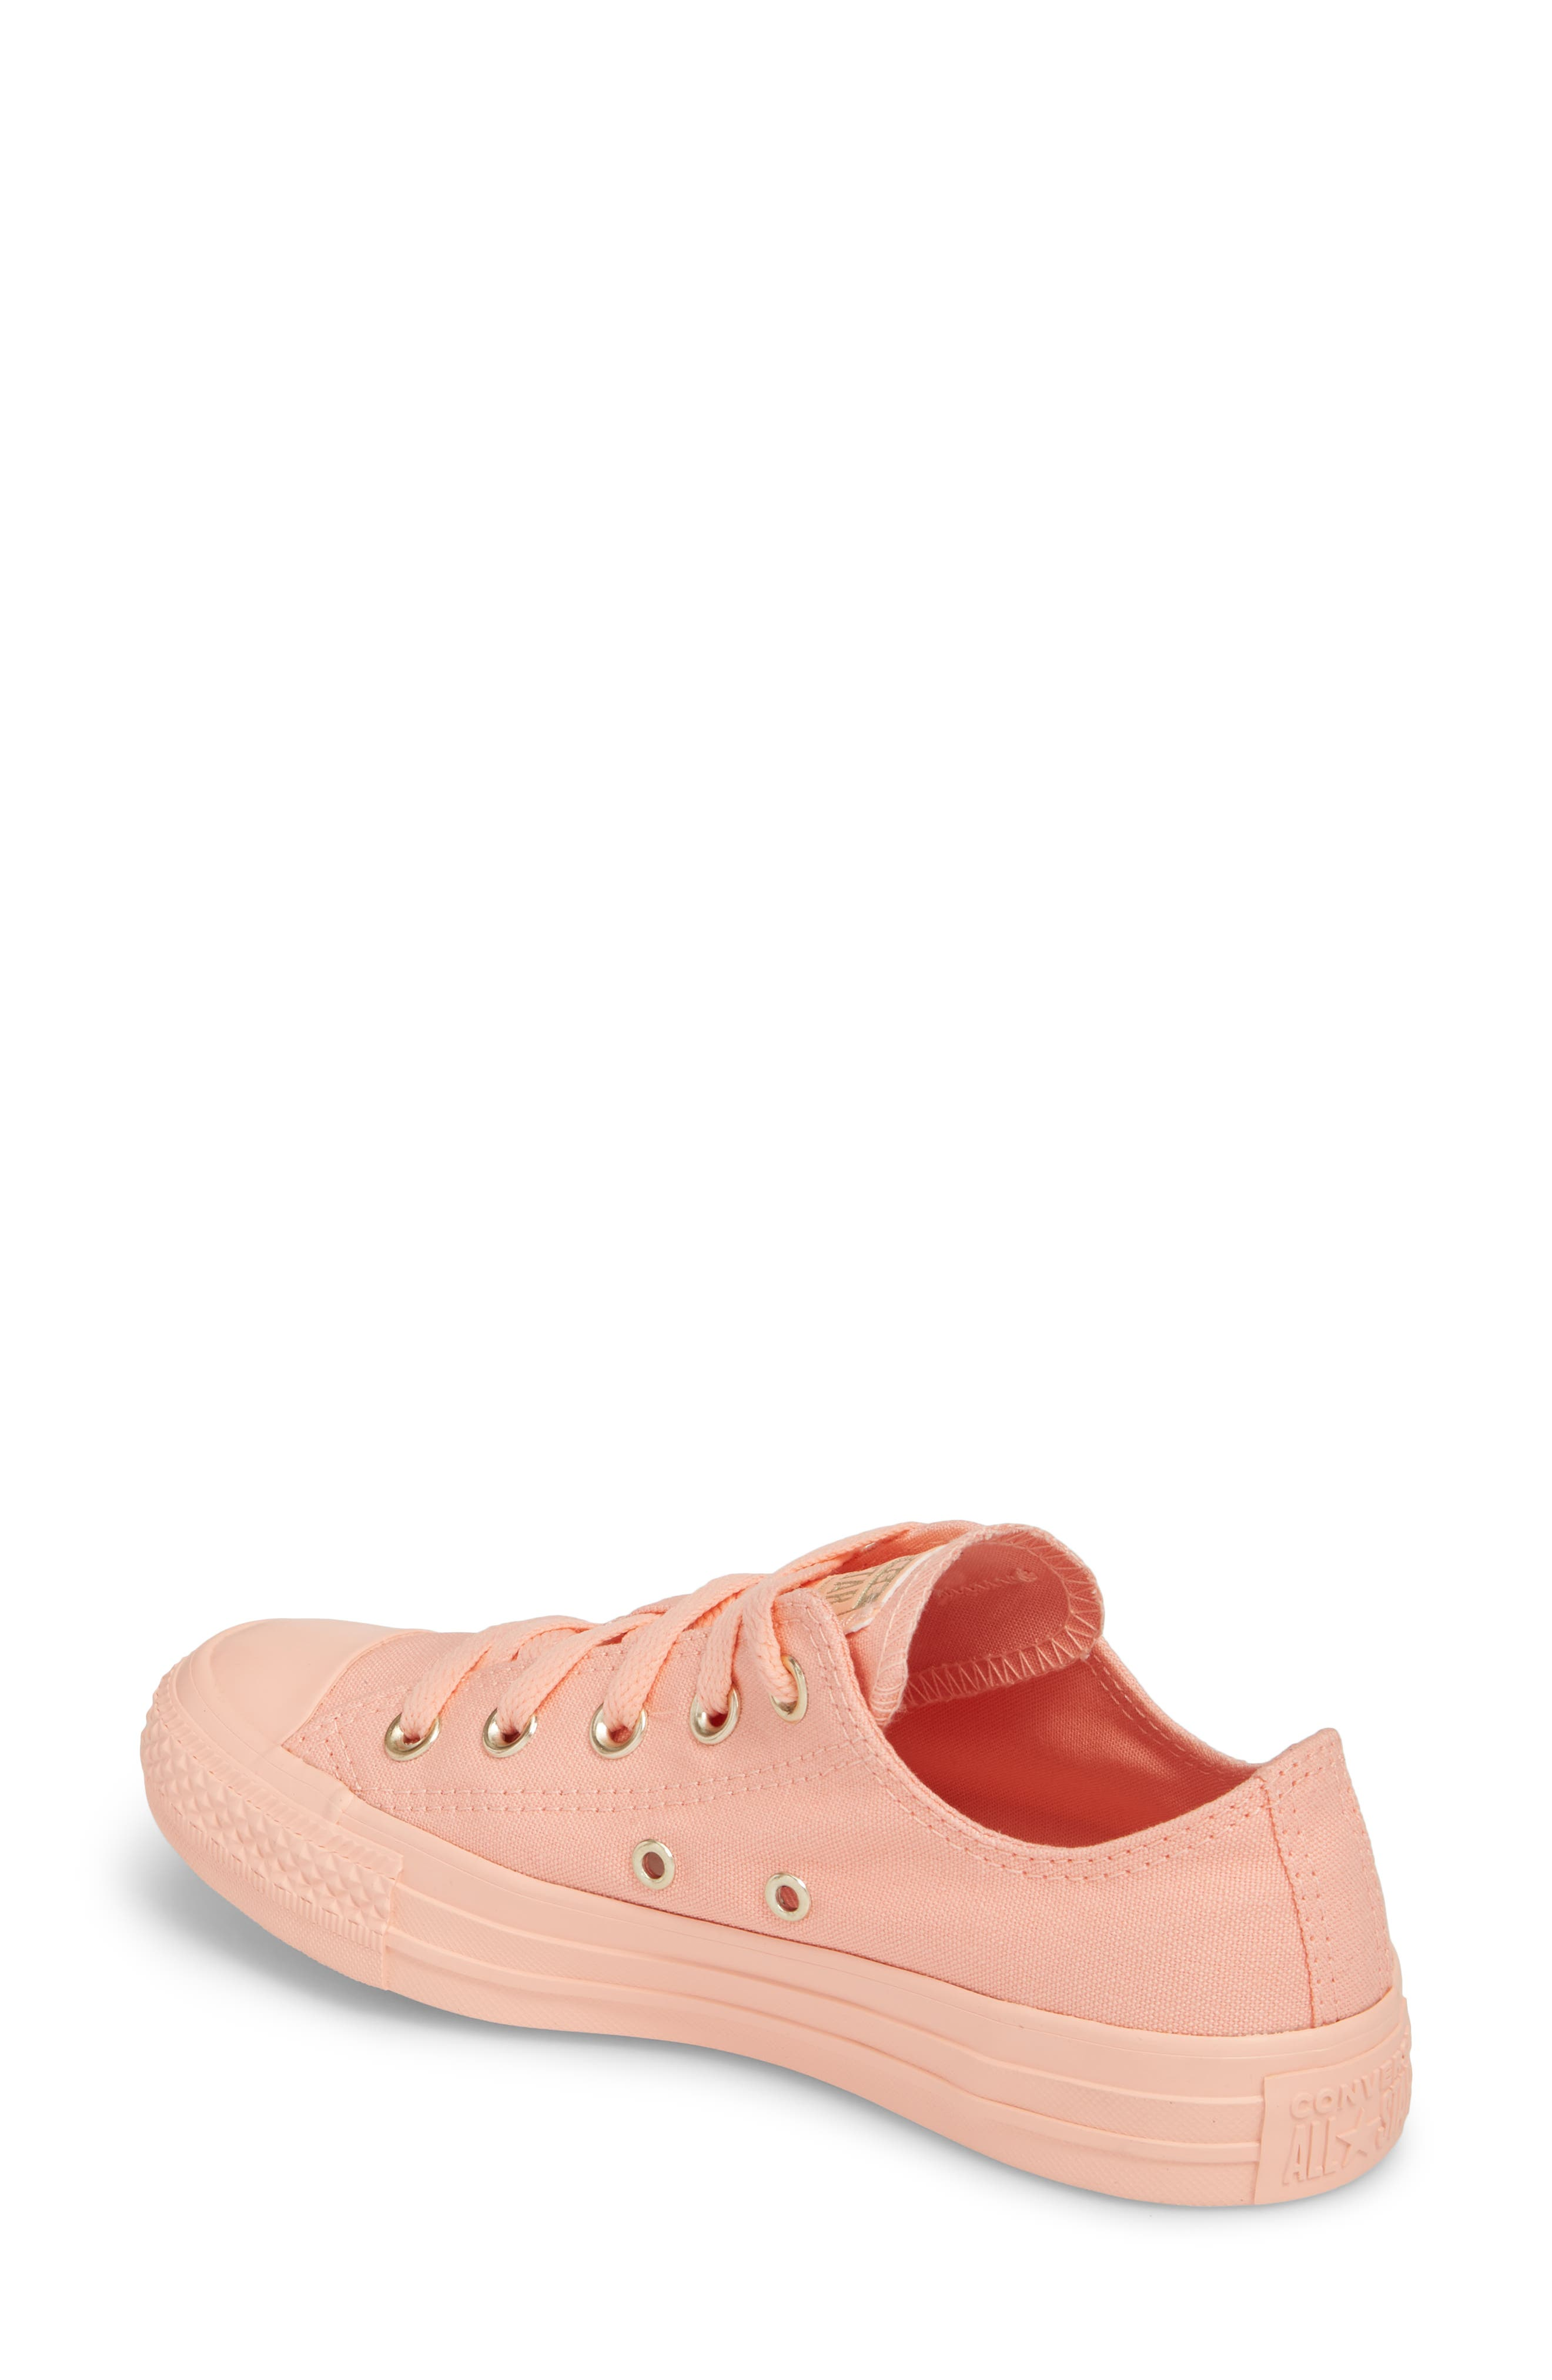 Chuck Taylor<sup>®</sup> All Star<sup>®</sup> Seasonal Color Sneaker,                             Alternate thumbnail 2, color,                             Pale Coral